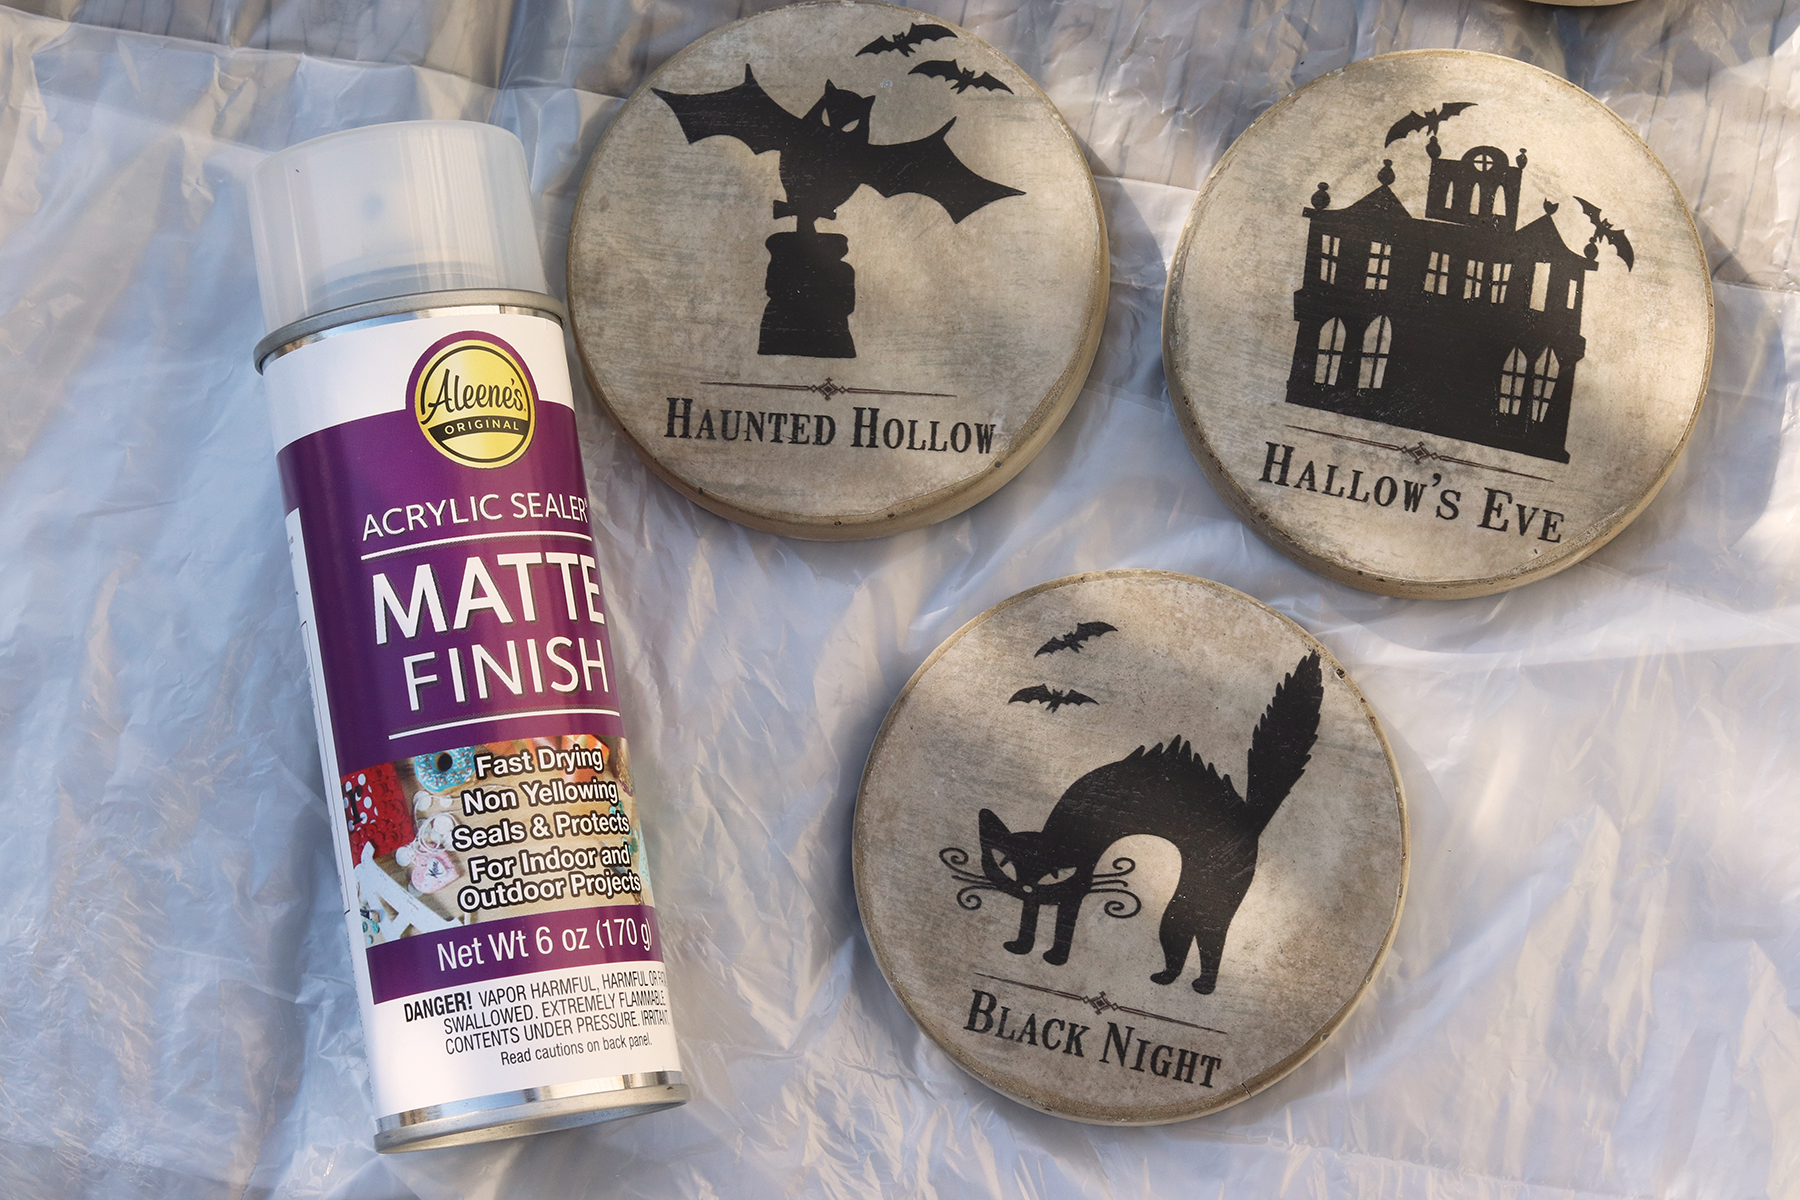 Boroughfare Home Applying a Matte Finish to the Halloween Coasters